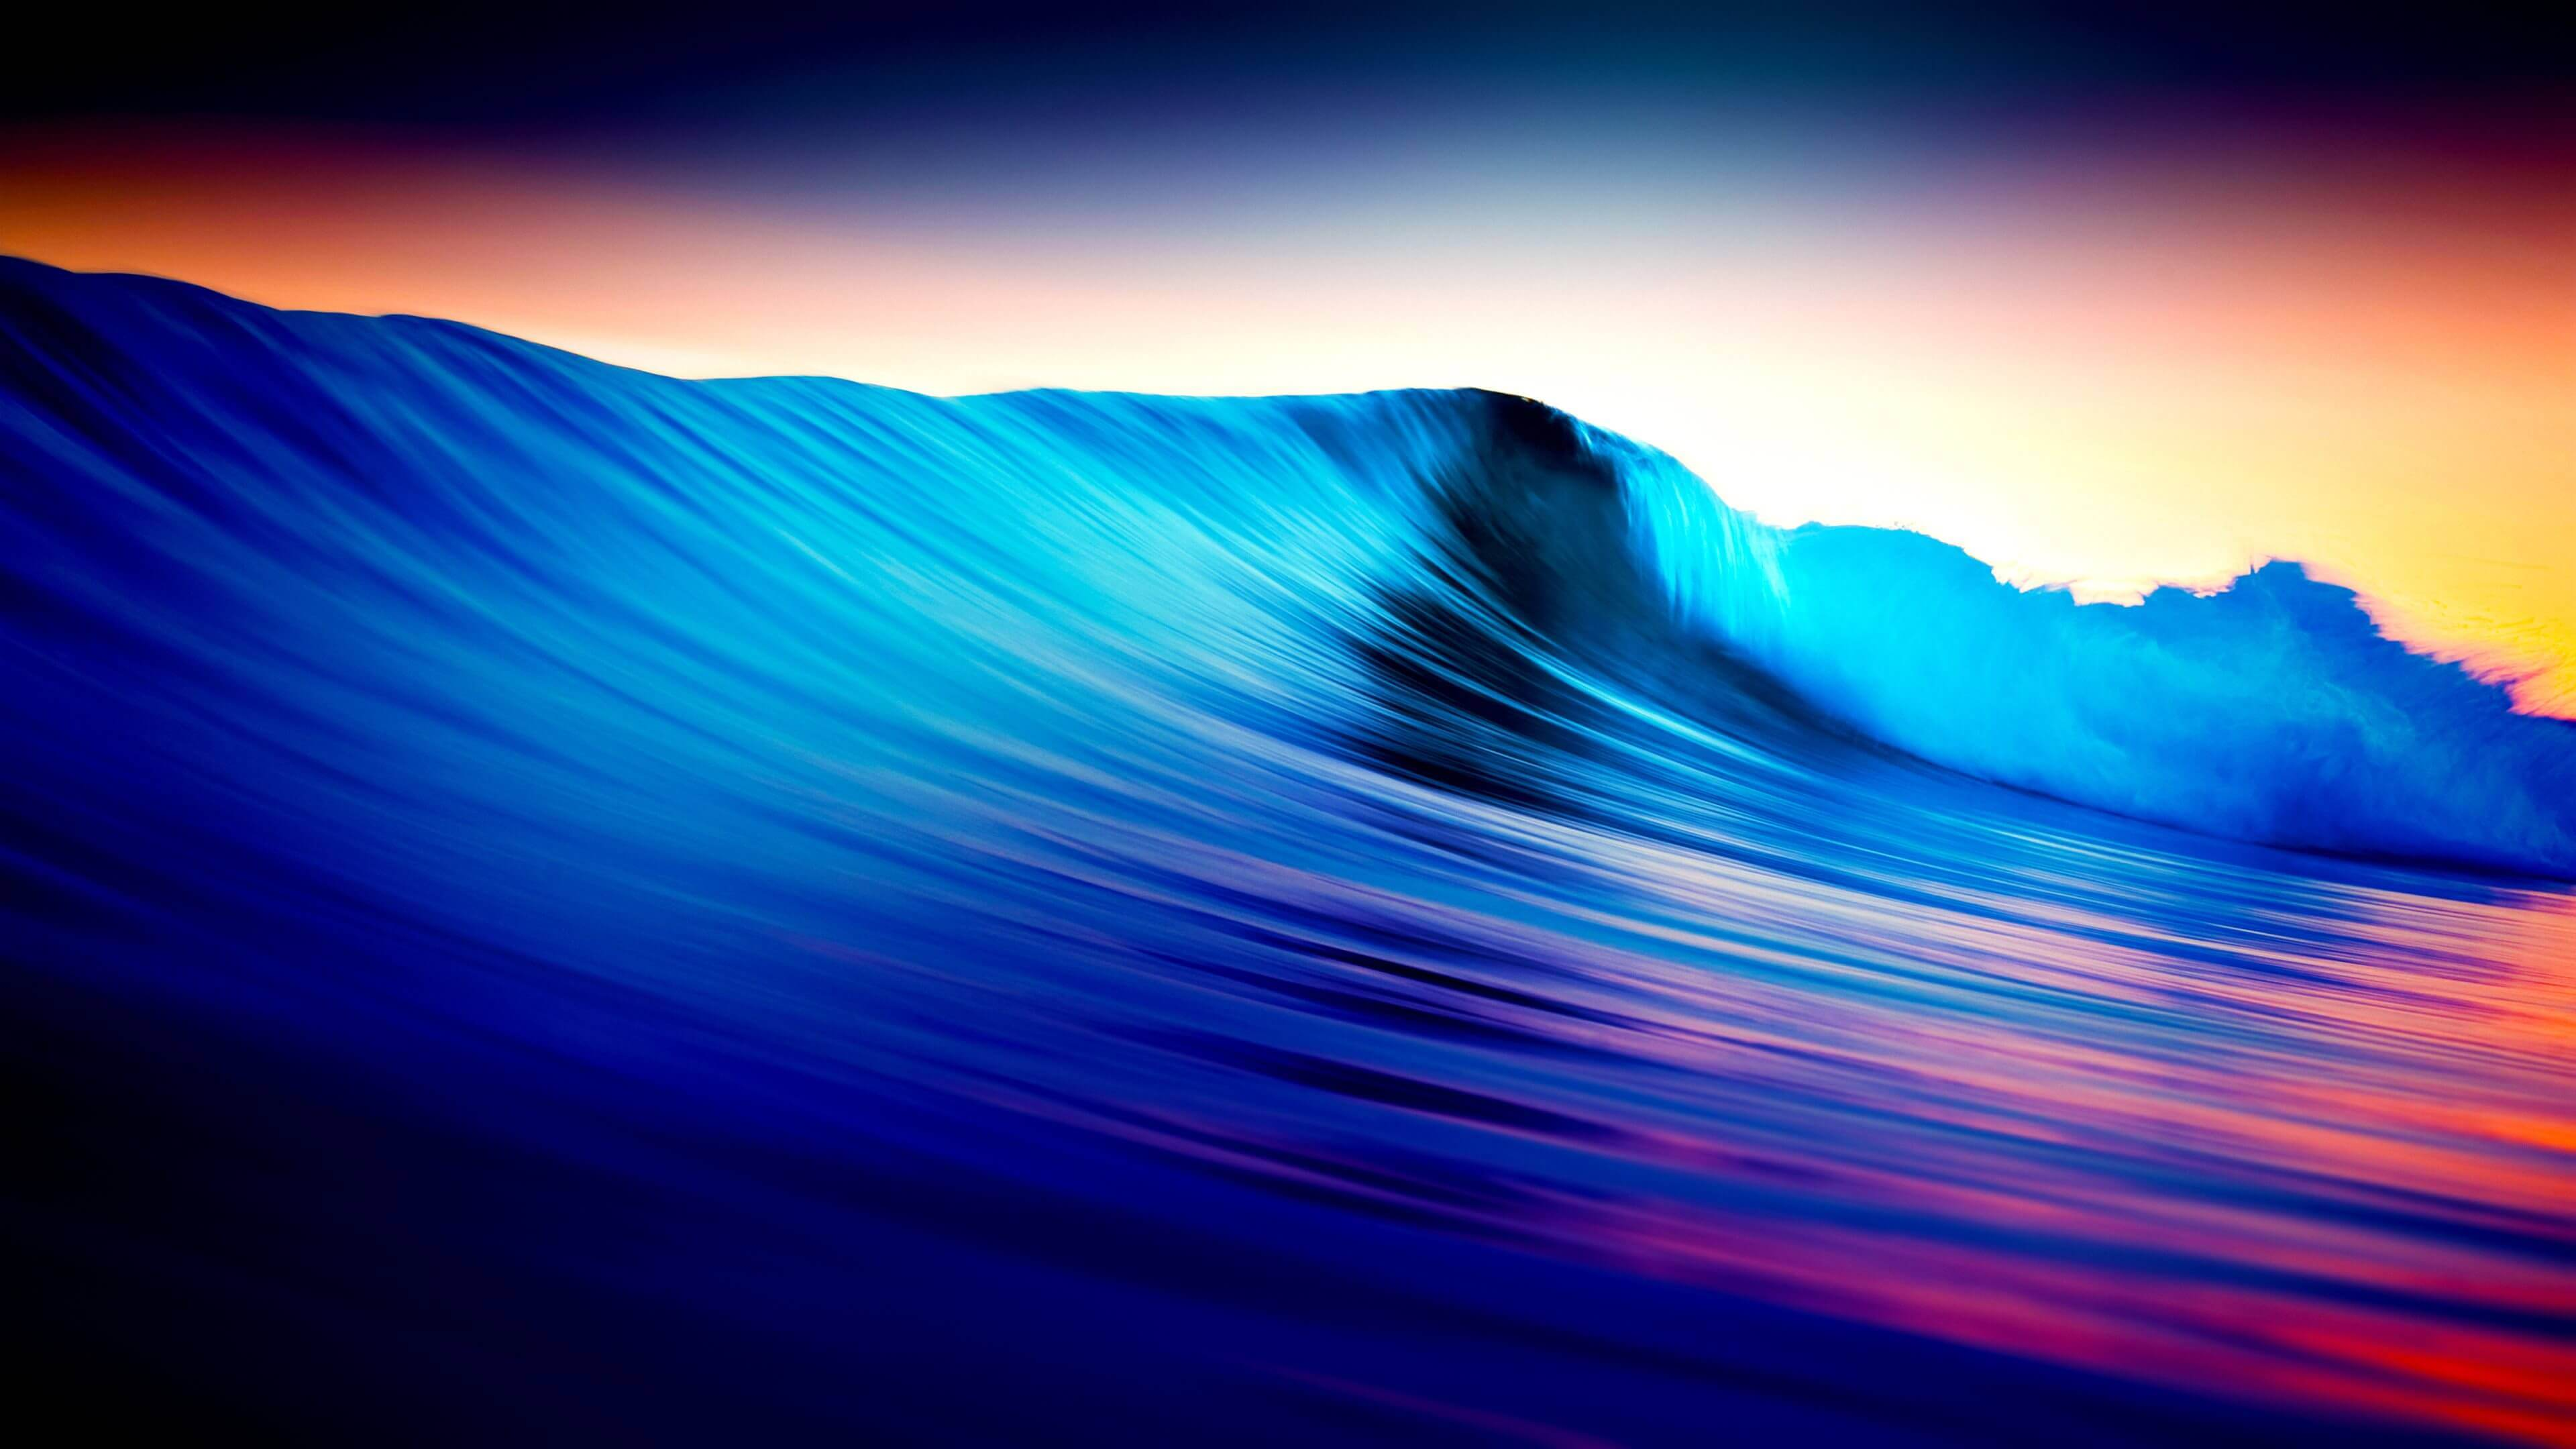 Colorful Rolling Waves 4K Wallpaper 3840x2160